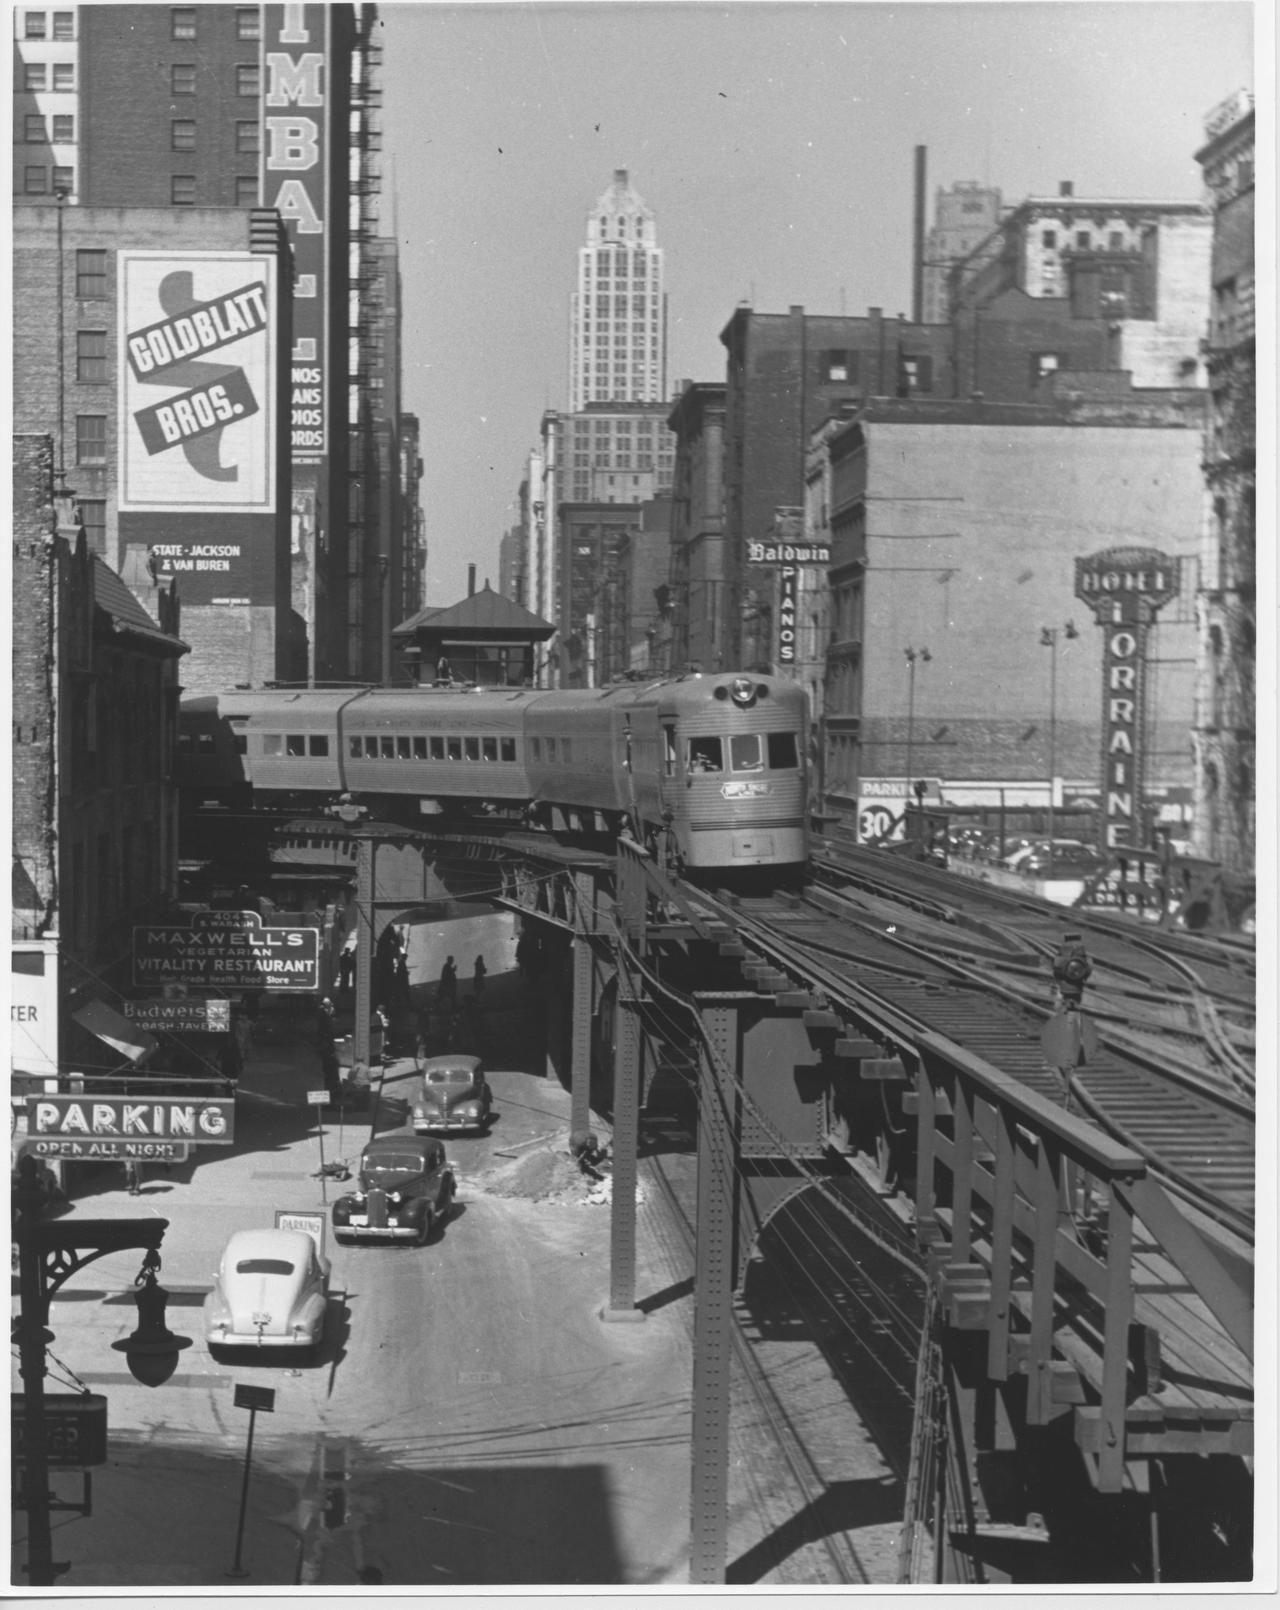 Chicago The El 1940 S Chicago Photos Chicago Illinois Chicago City